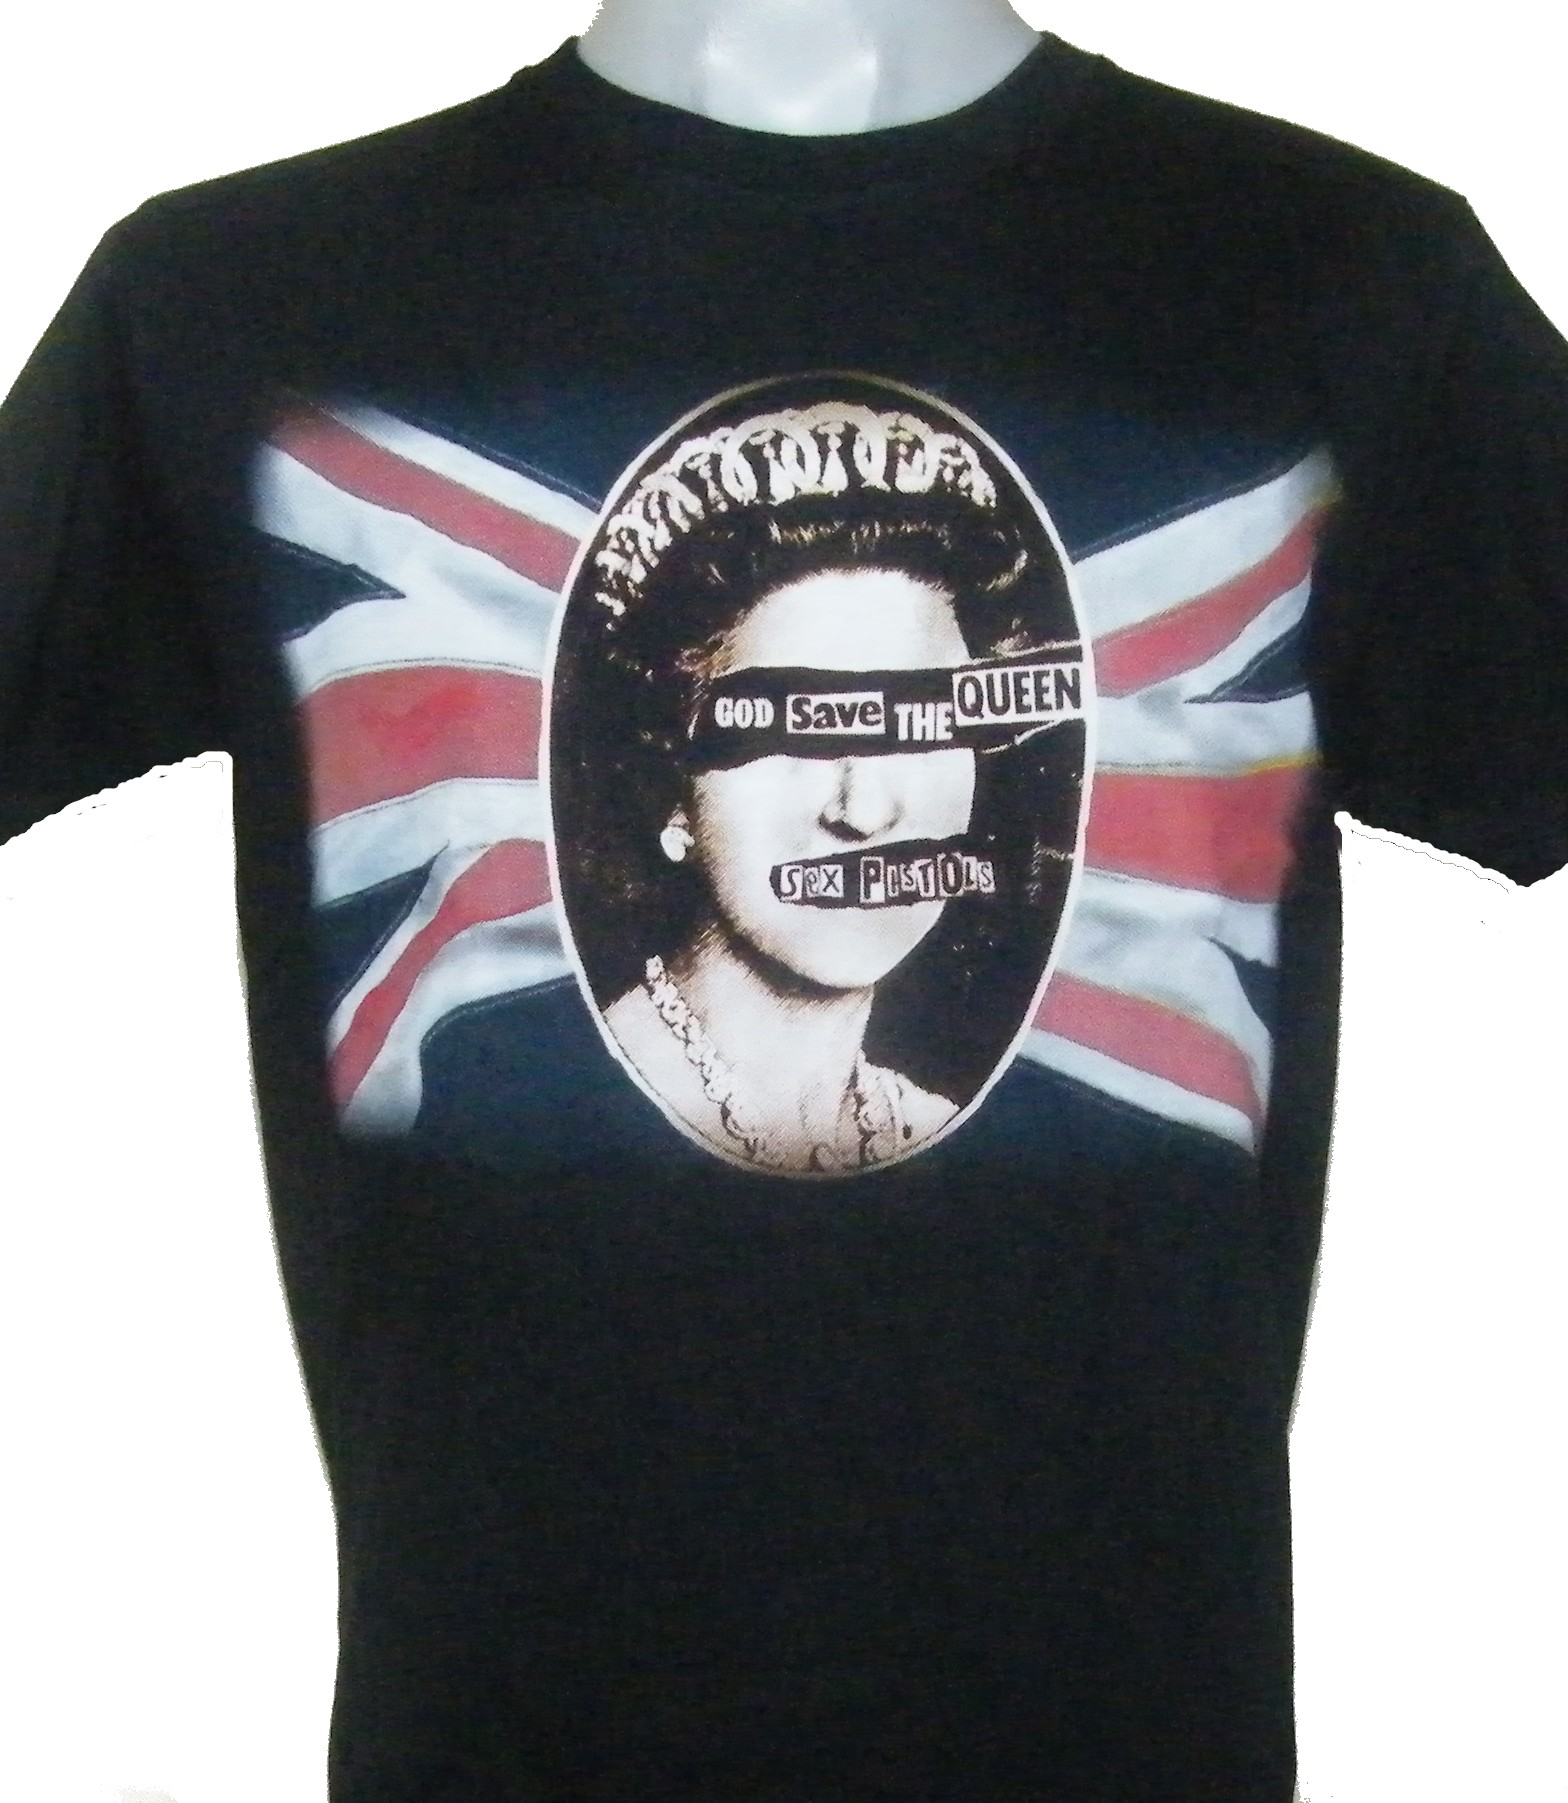 Absolute cult sex pistols men's god save the queen